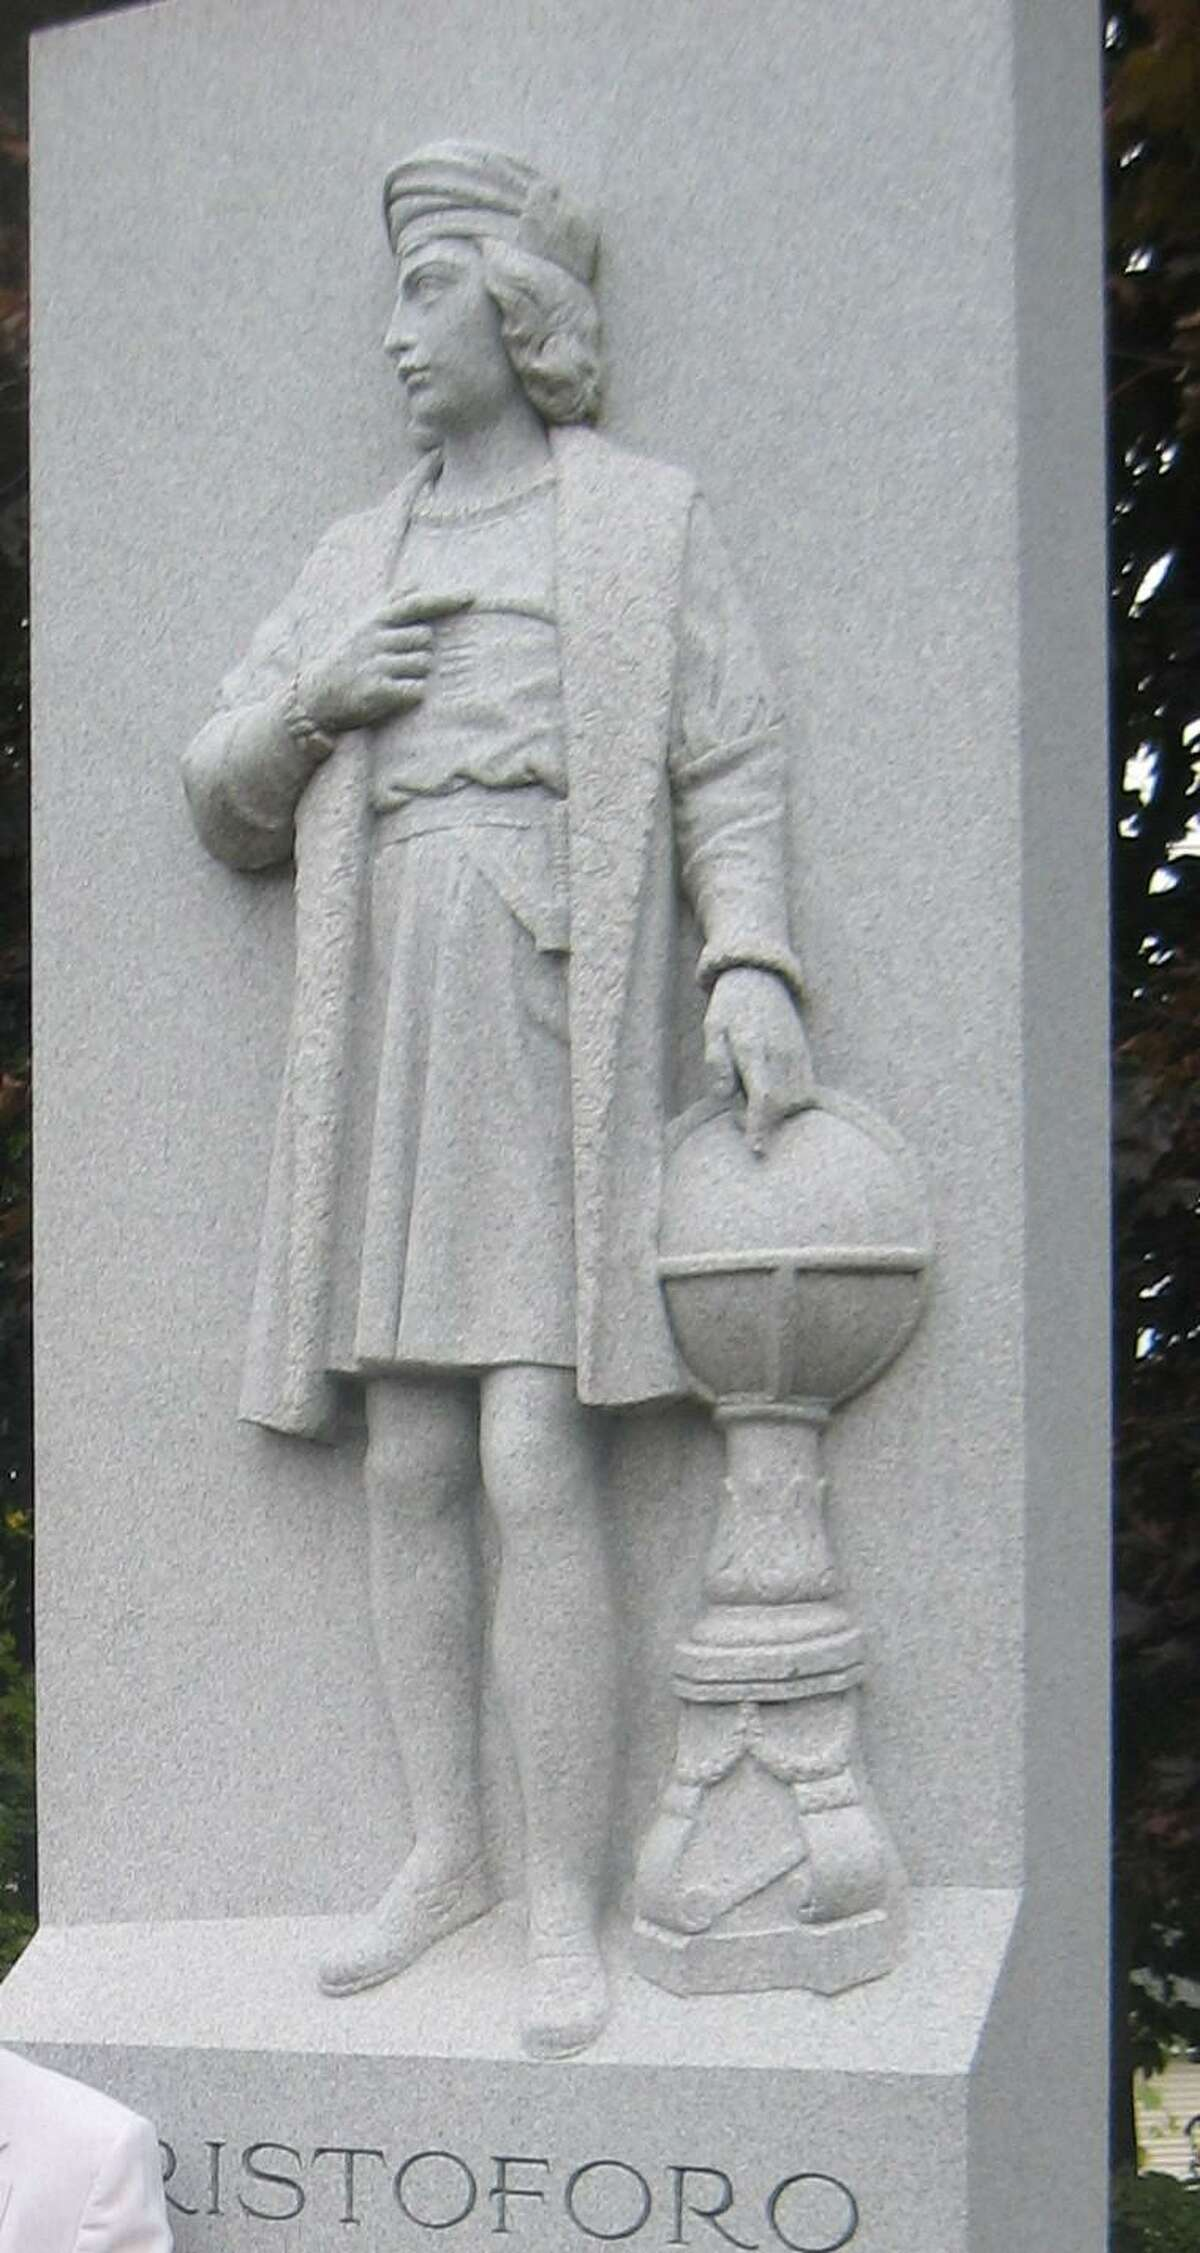 An online petition is calling for the removal of Torrington's Columbus monument and to rename Columbus Square.